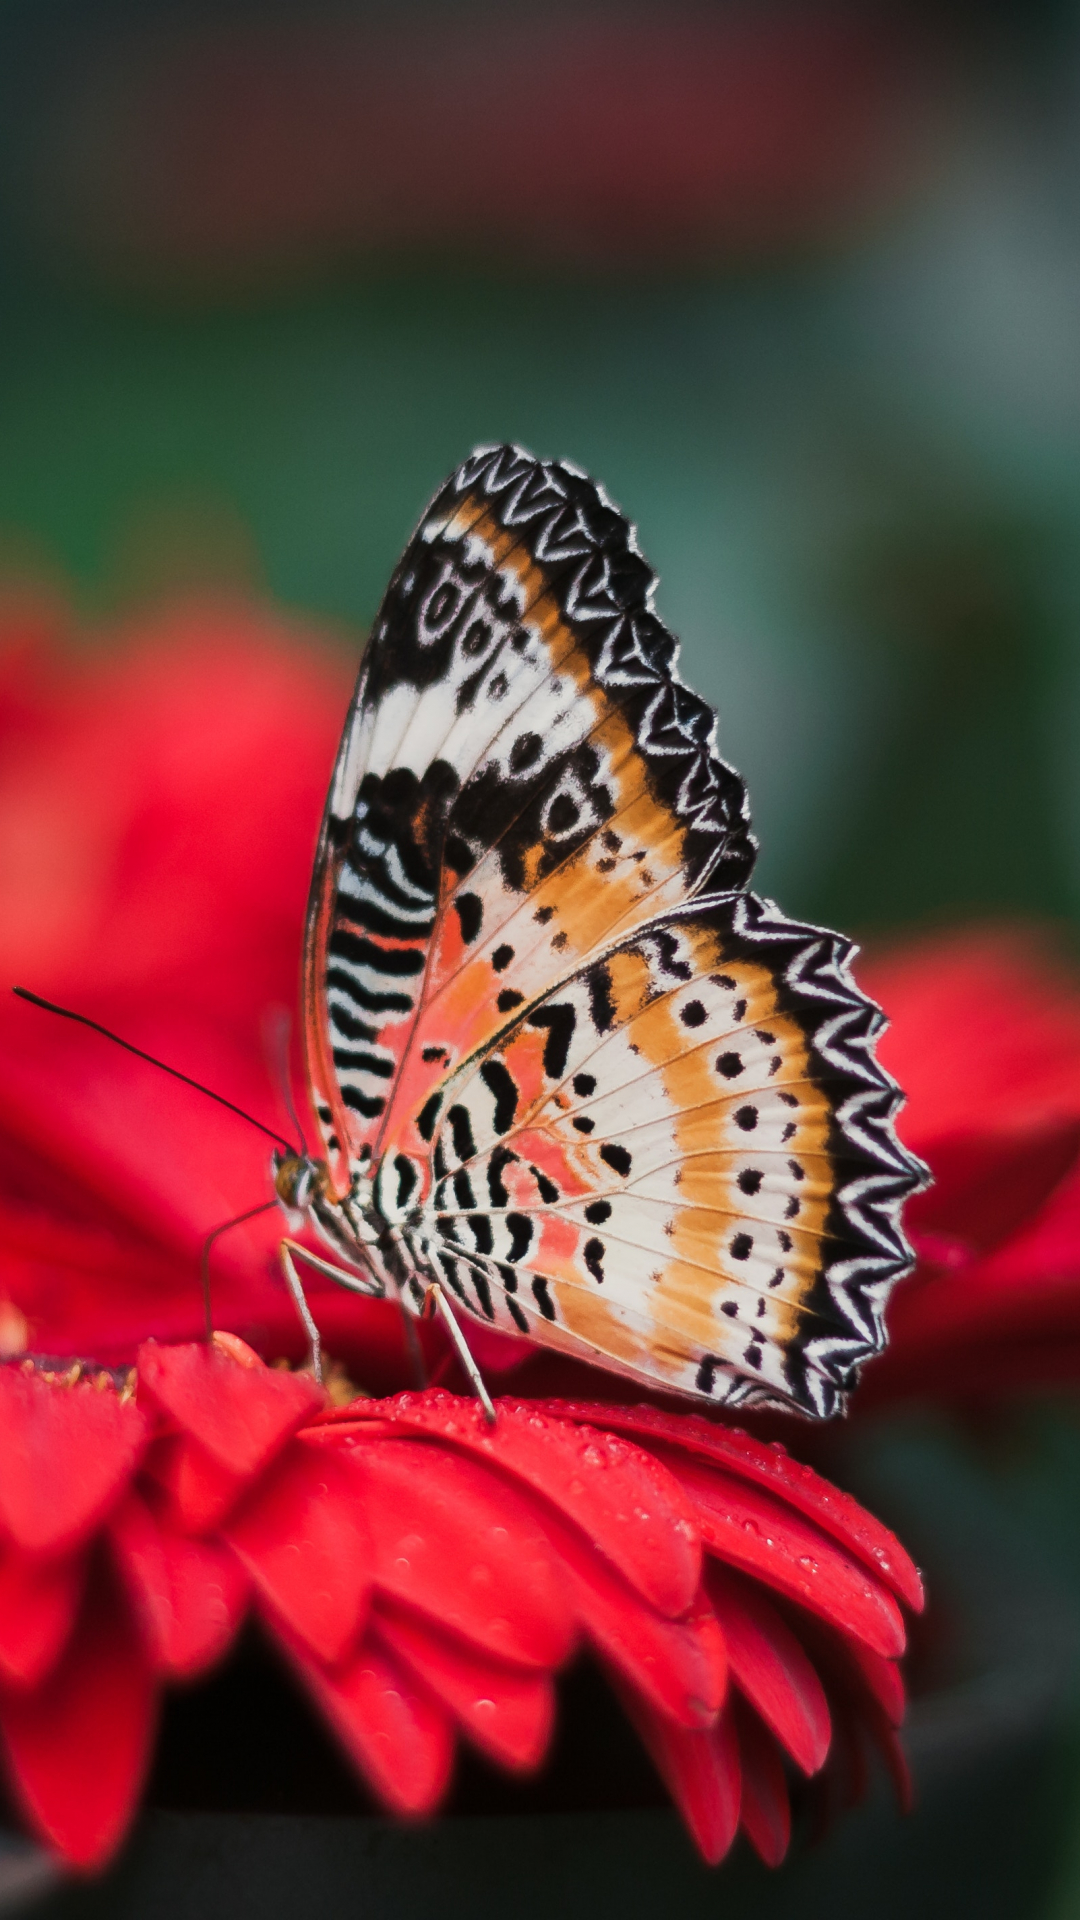 Butterfly On A Flower Iphone Wallpaper Idrop News